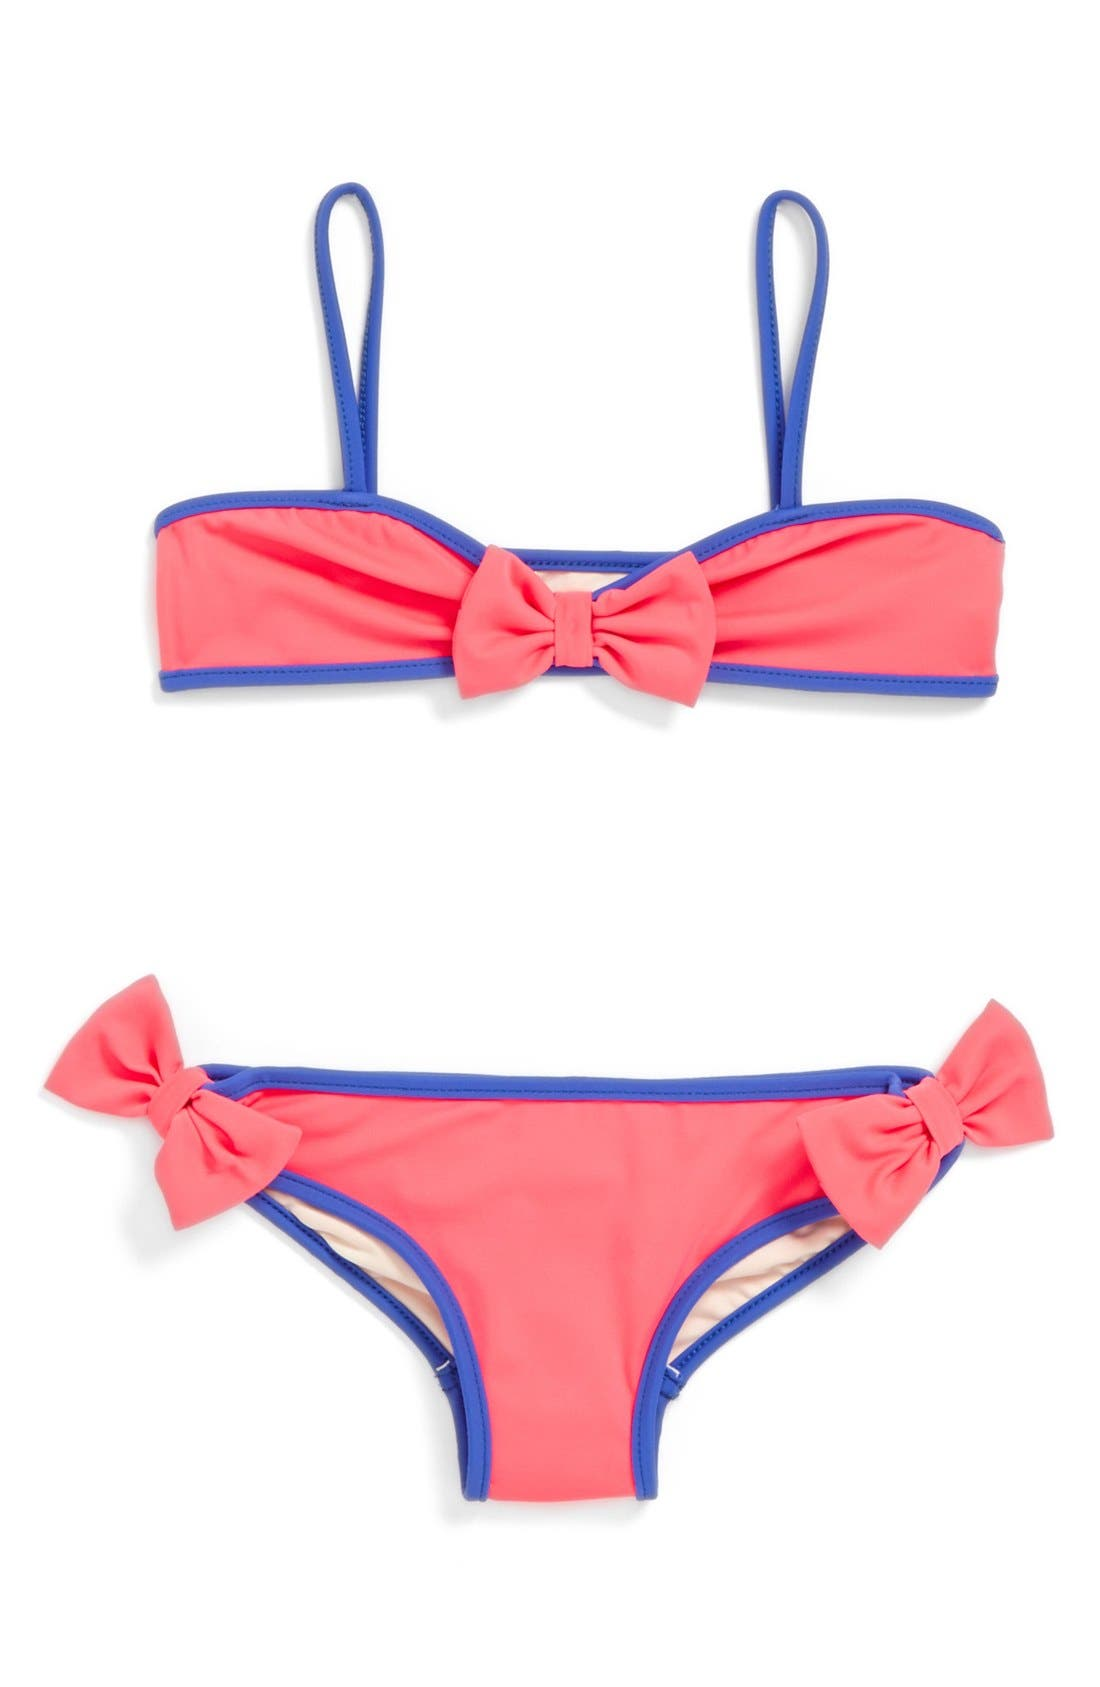 Alternate Image 1 Selected - Milly Minis 'Mini Bow' Two-Piece Swimsuit (Toddler Girls, Little Girls & Big Girls)